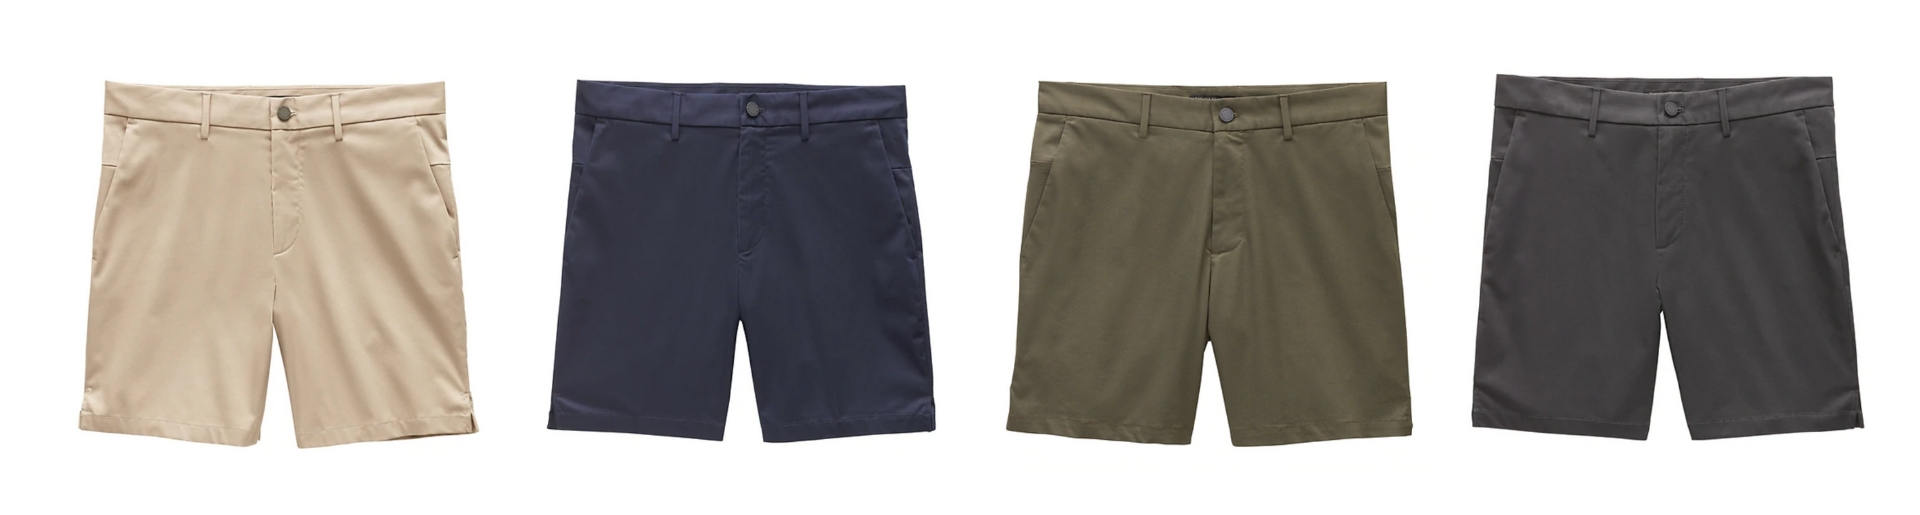 Minimalist mens shorts collection